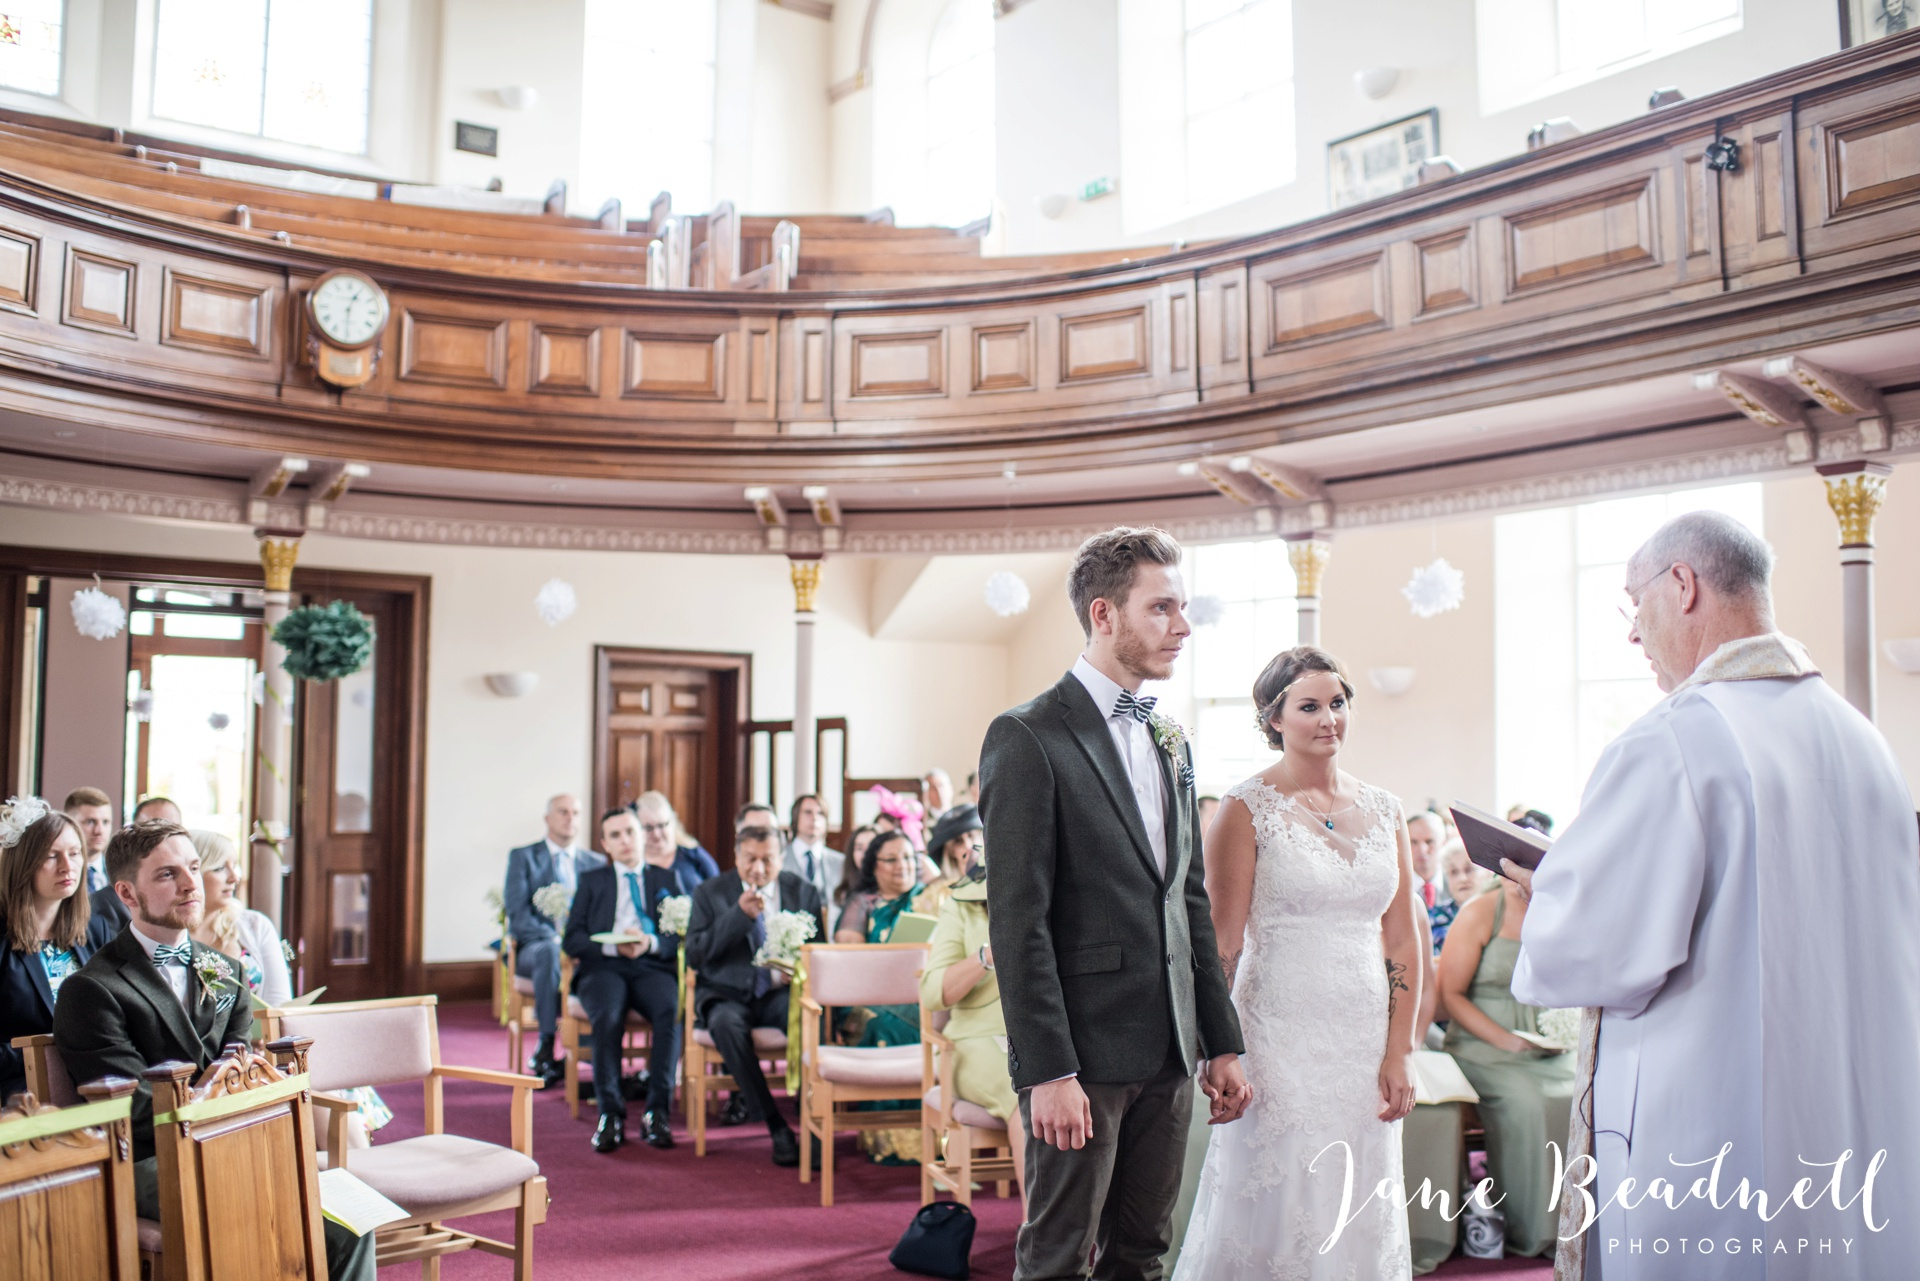 Jane Beadnell fine art wedding photographer The Old Deanery Ripon_0037